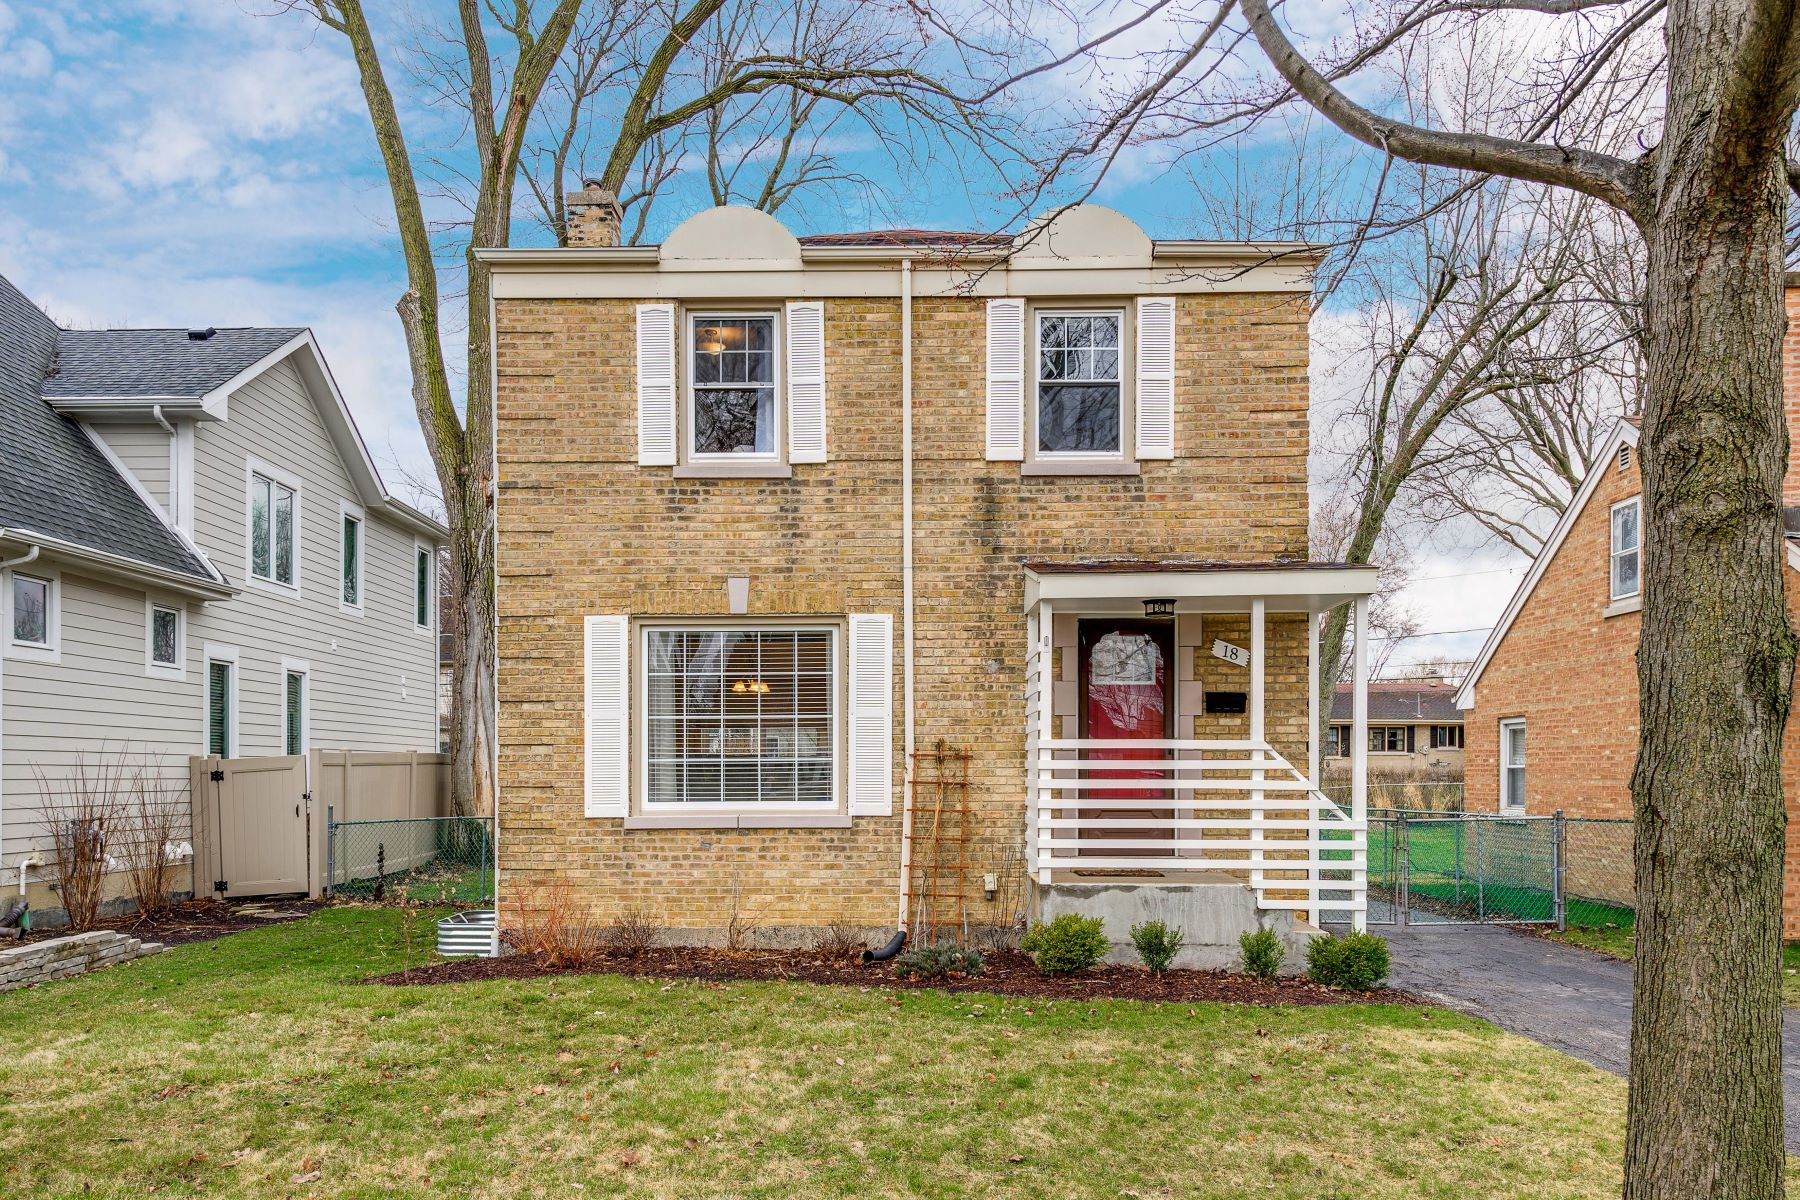 Single Family Homes for Active at Beautifully Updated Glenview Home 18 Lincoln Street Glenview, Illinois 60025 United States